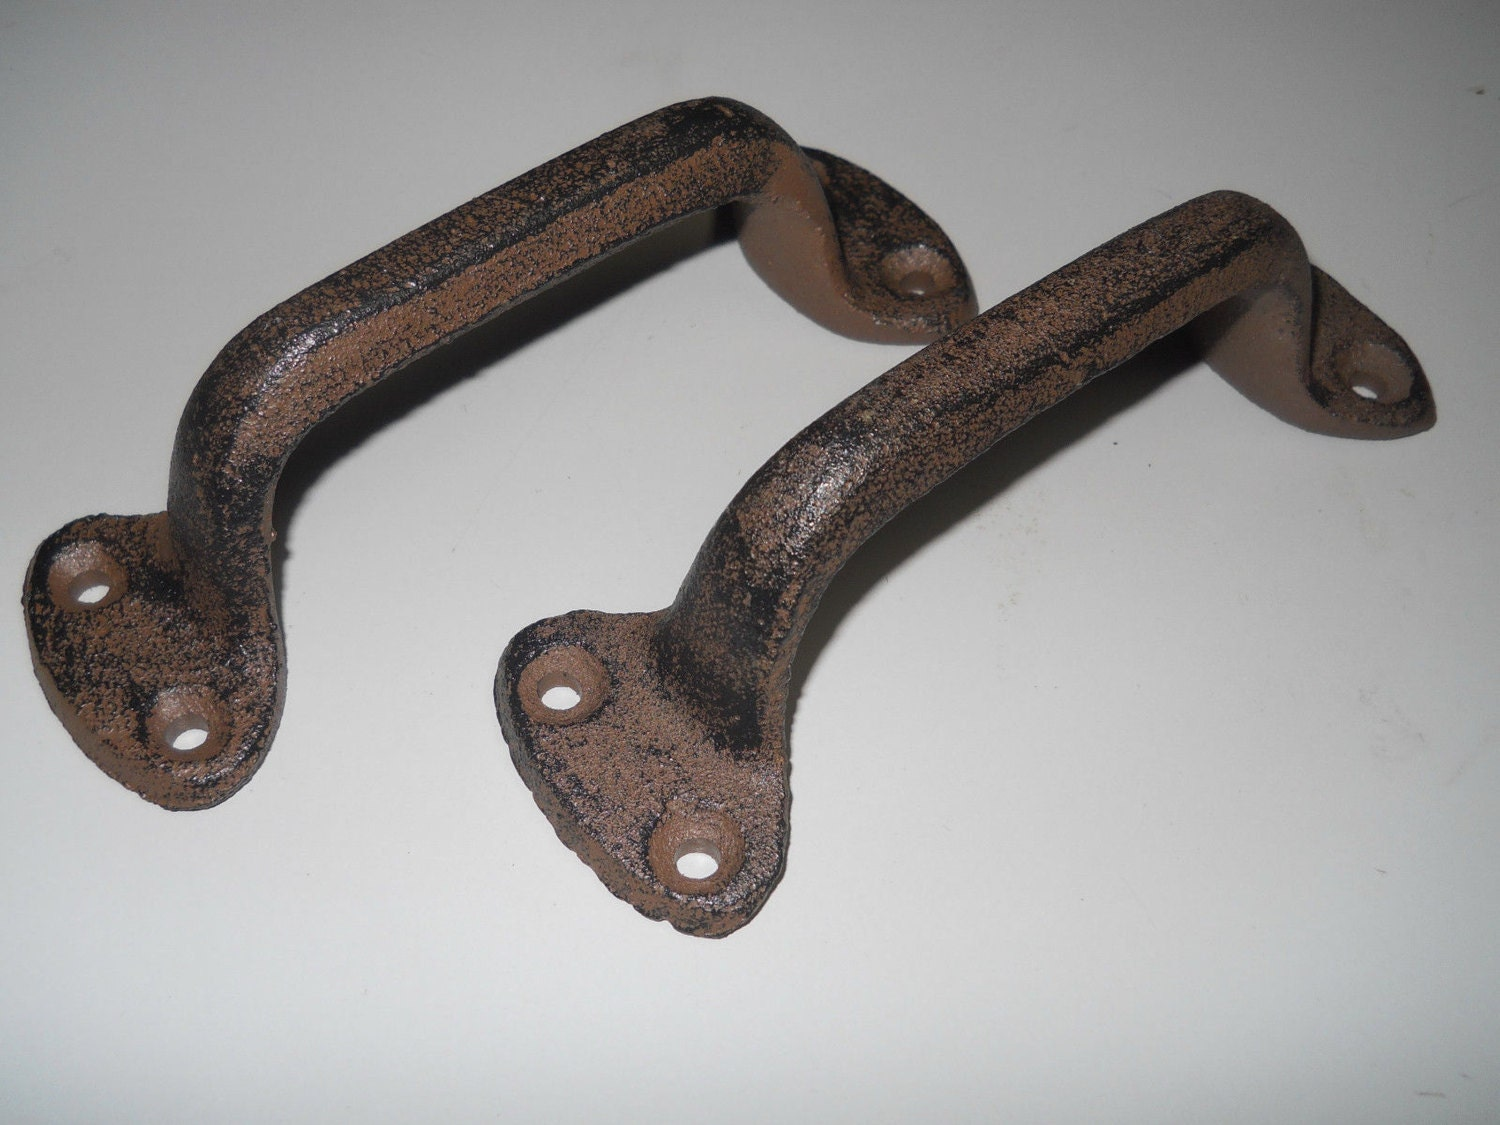 Rustic Barn Door Pulls 2 Cast Iron Antique Style Rustic Barn Handle Gate Pull Shed